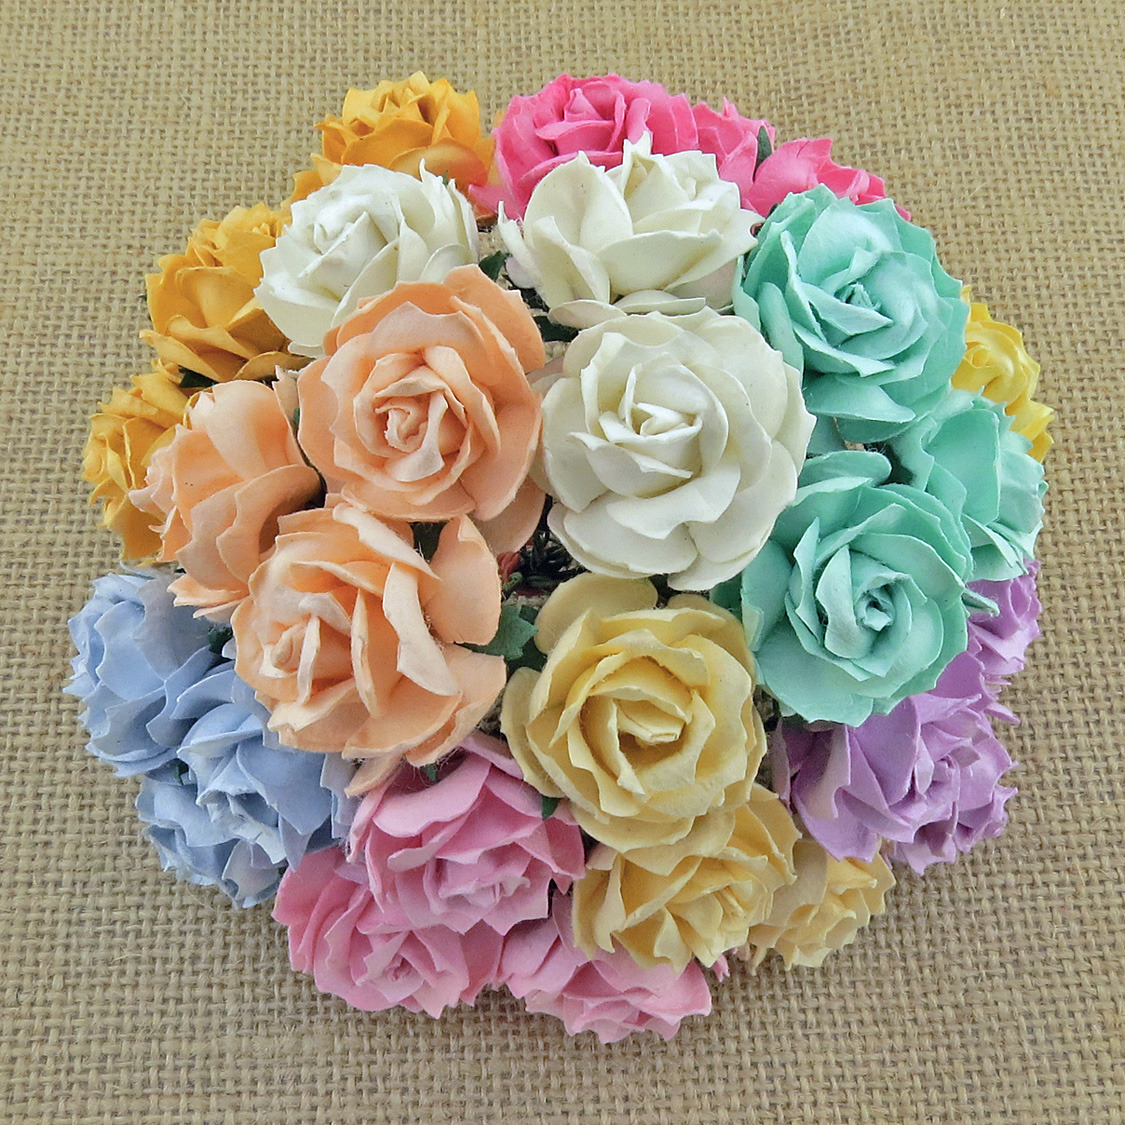 Wild Roses Promlee Flowers Wholesale Mulberry Paper Flowers